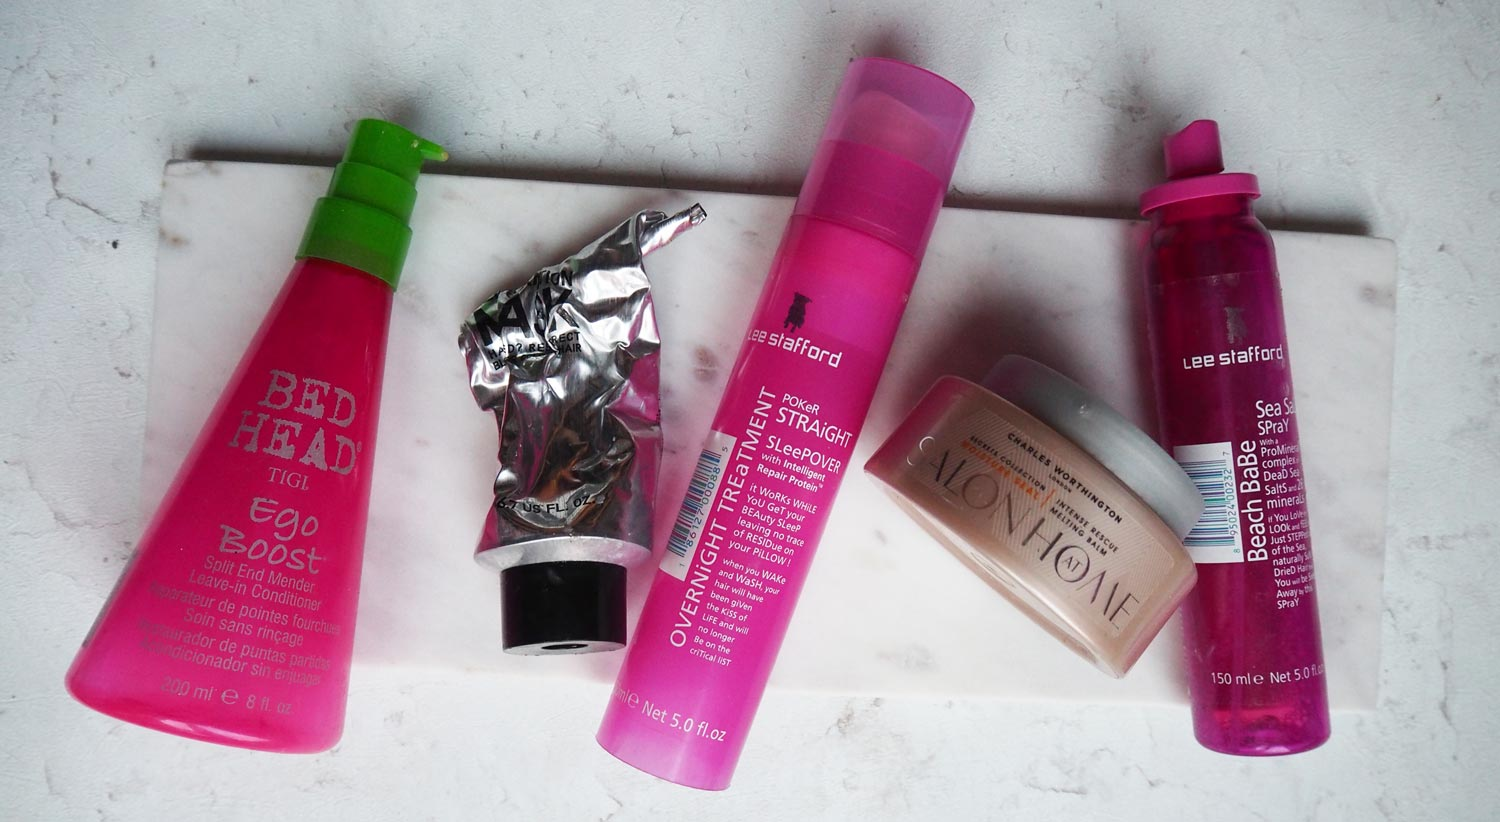 5-haircare-products-im-trying-to-use-up